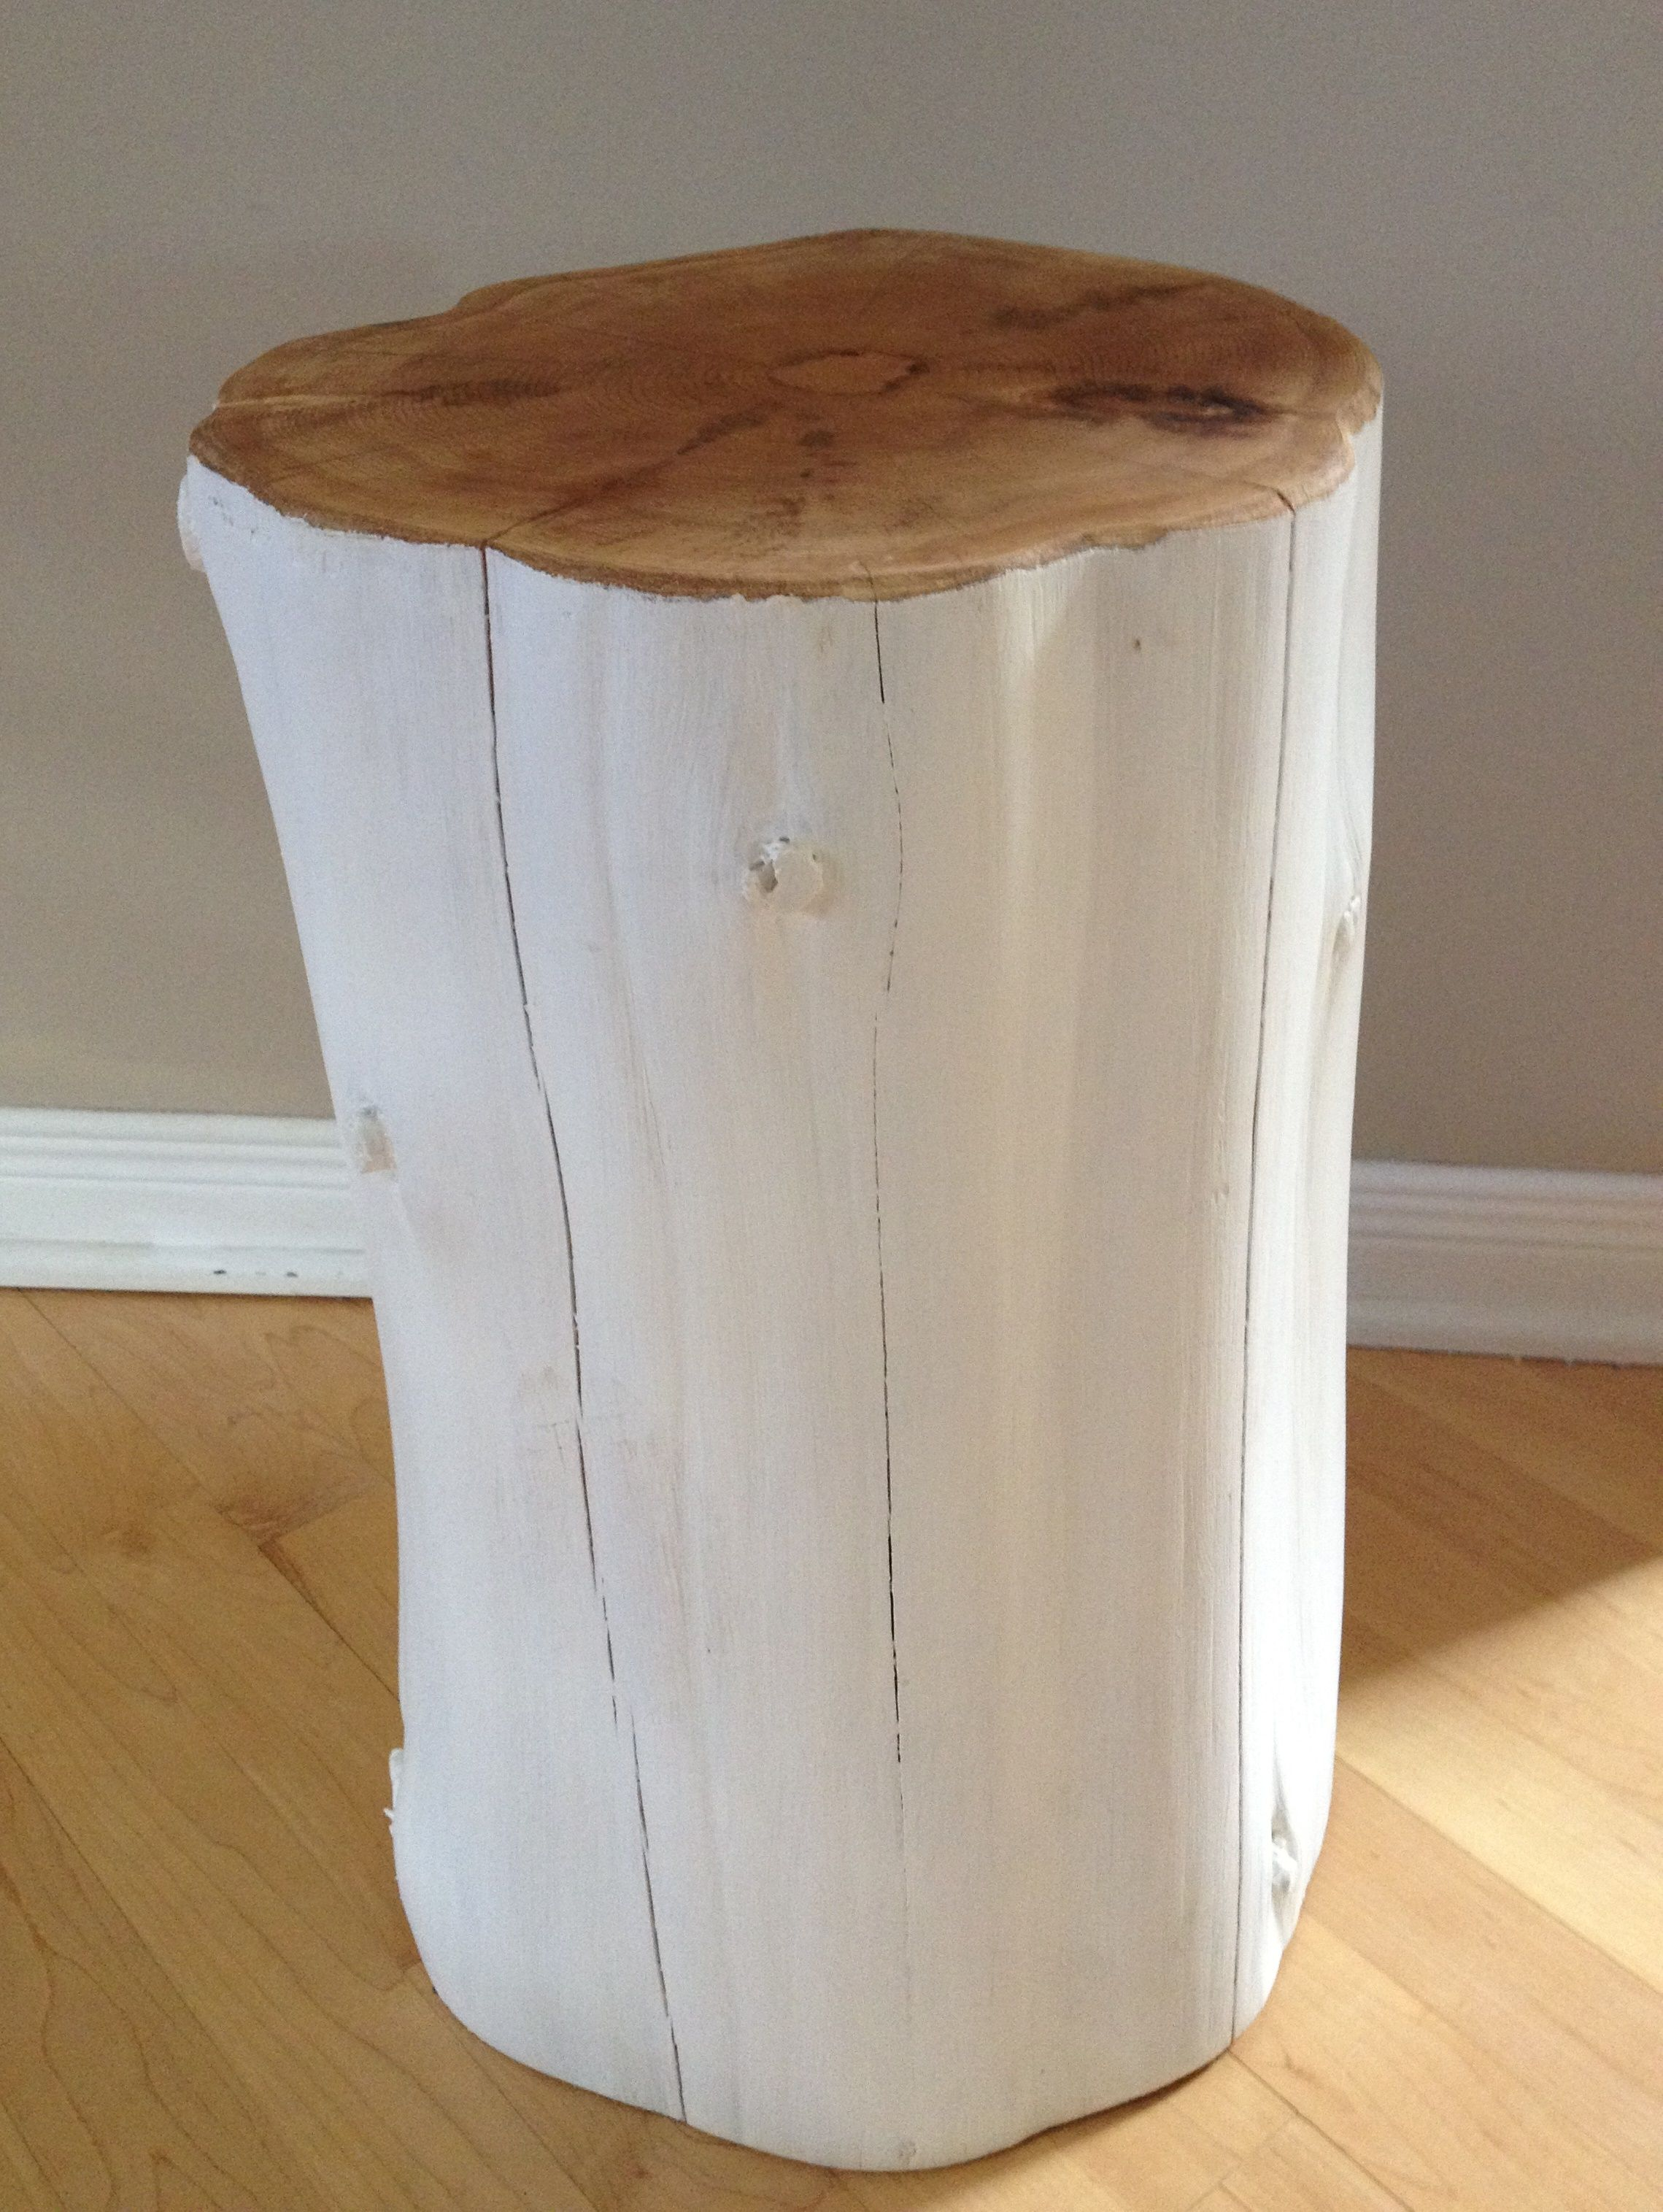 White stump tables with natural top. Can be left natural or painting any colour! Ottawa, Ontario Canada Serenitystumps.com